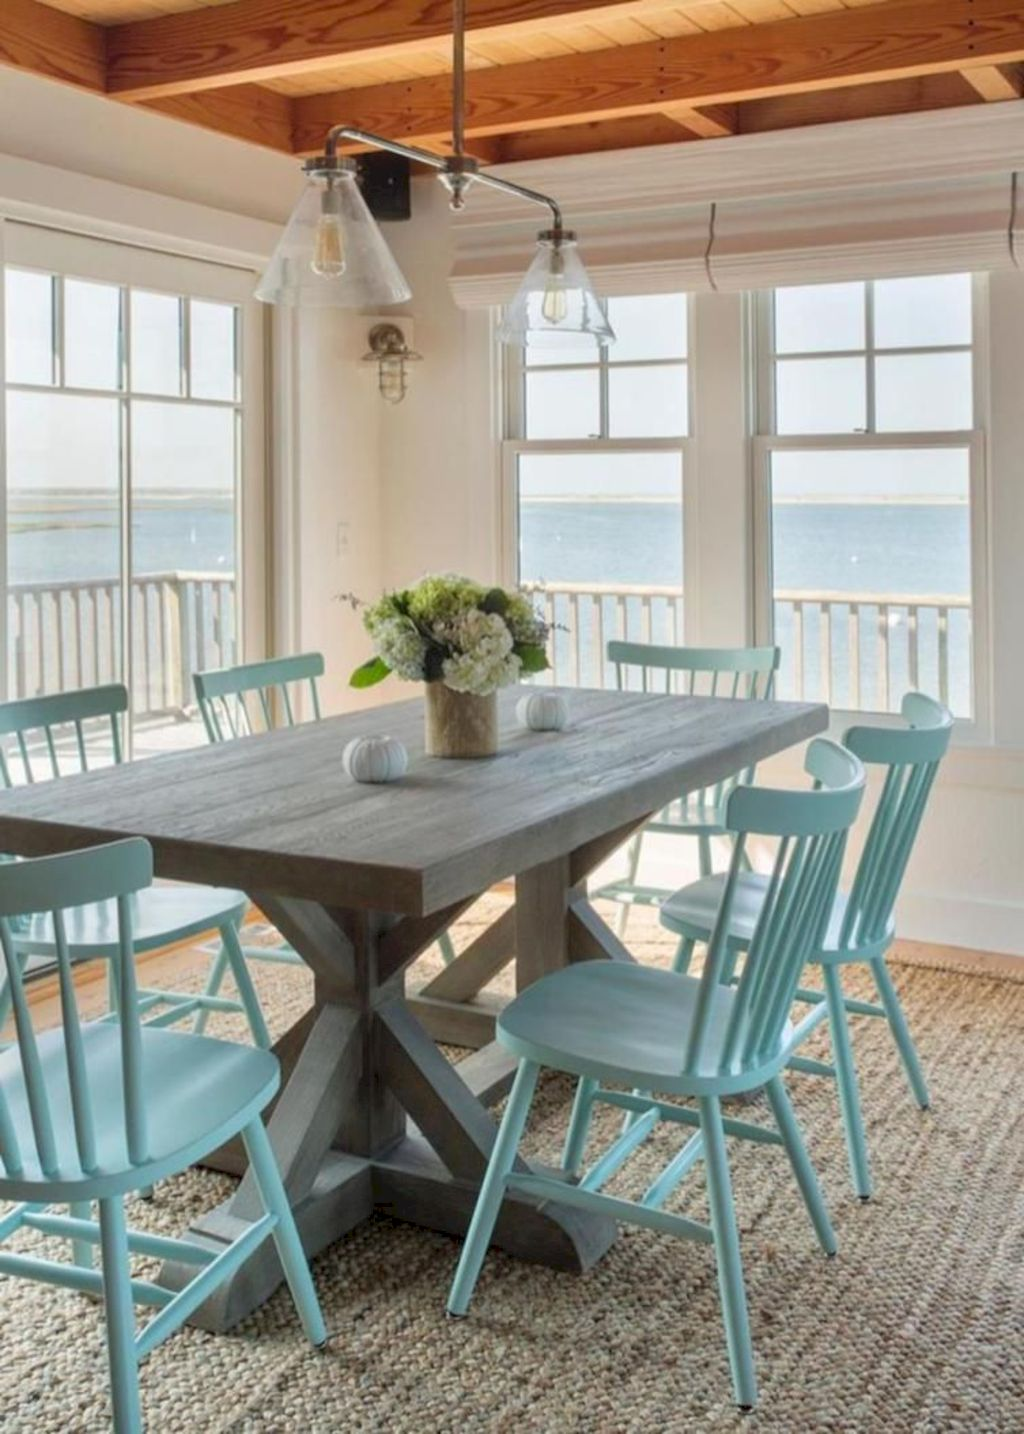 Beach home dining room style giving a fresh vibe among inviting recreational interior update Image 13